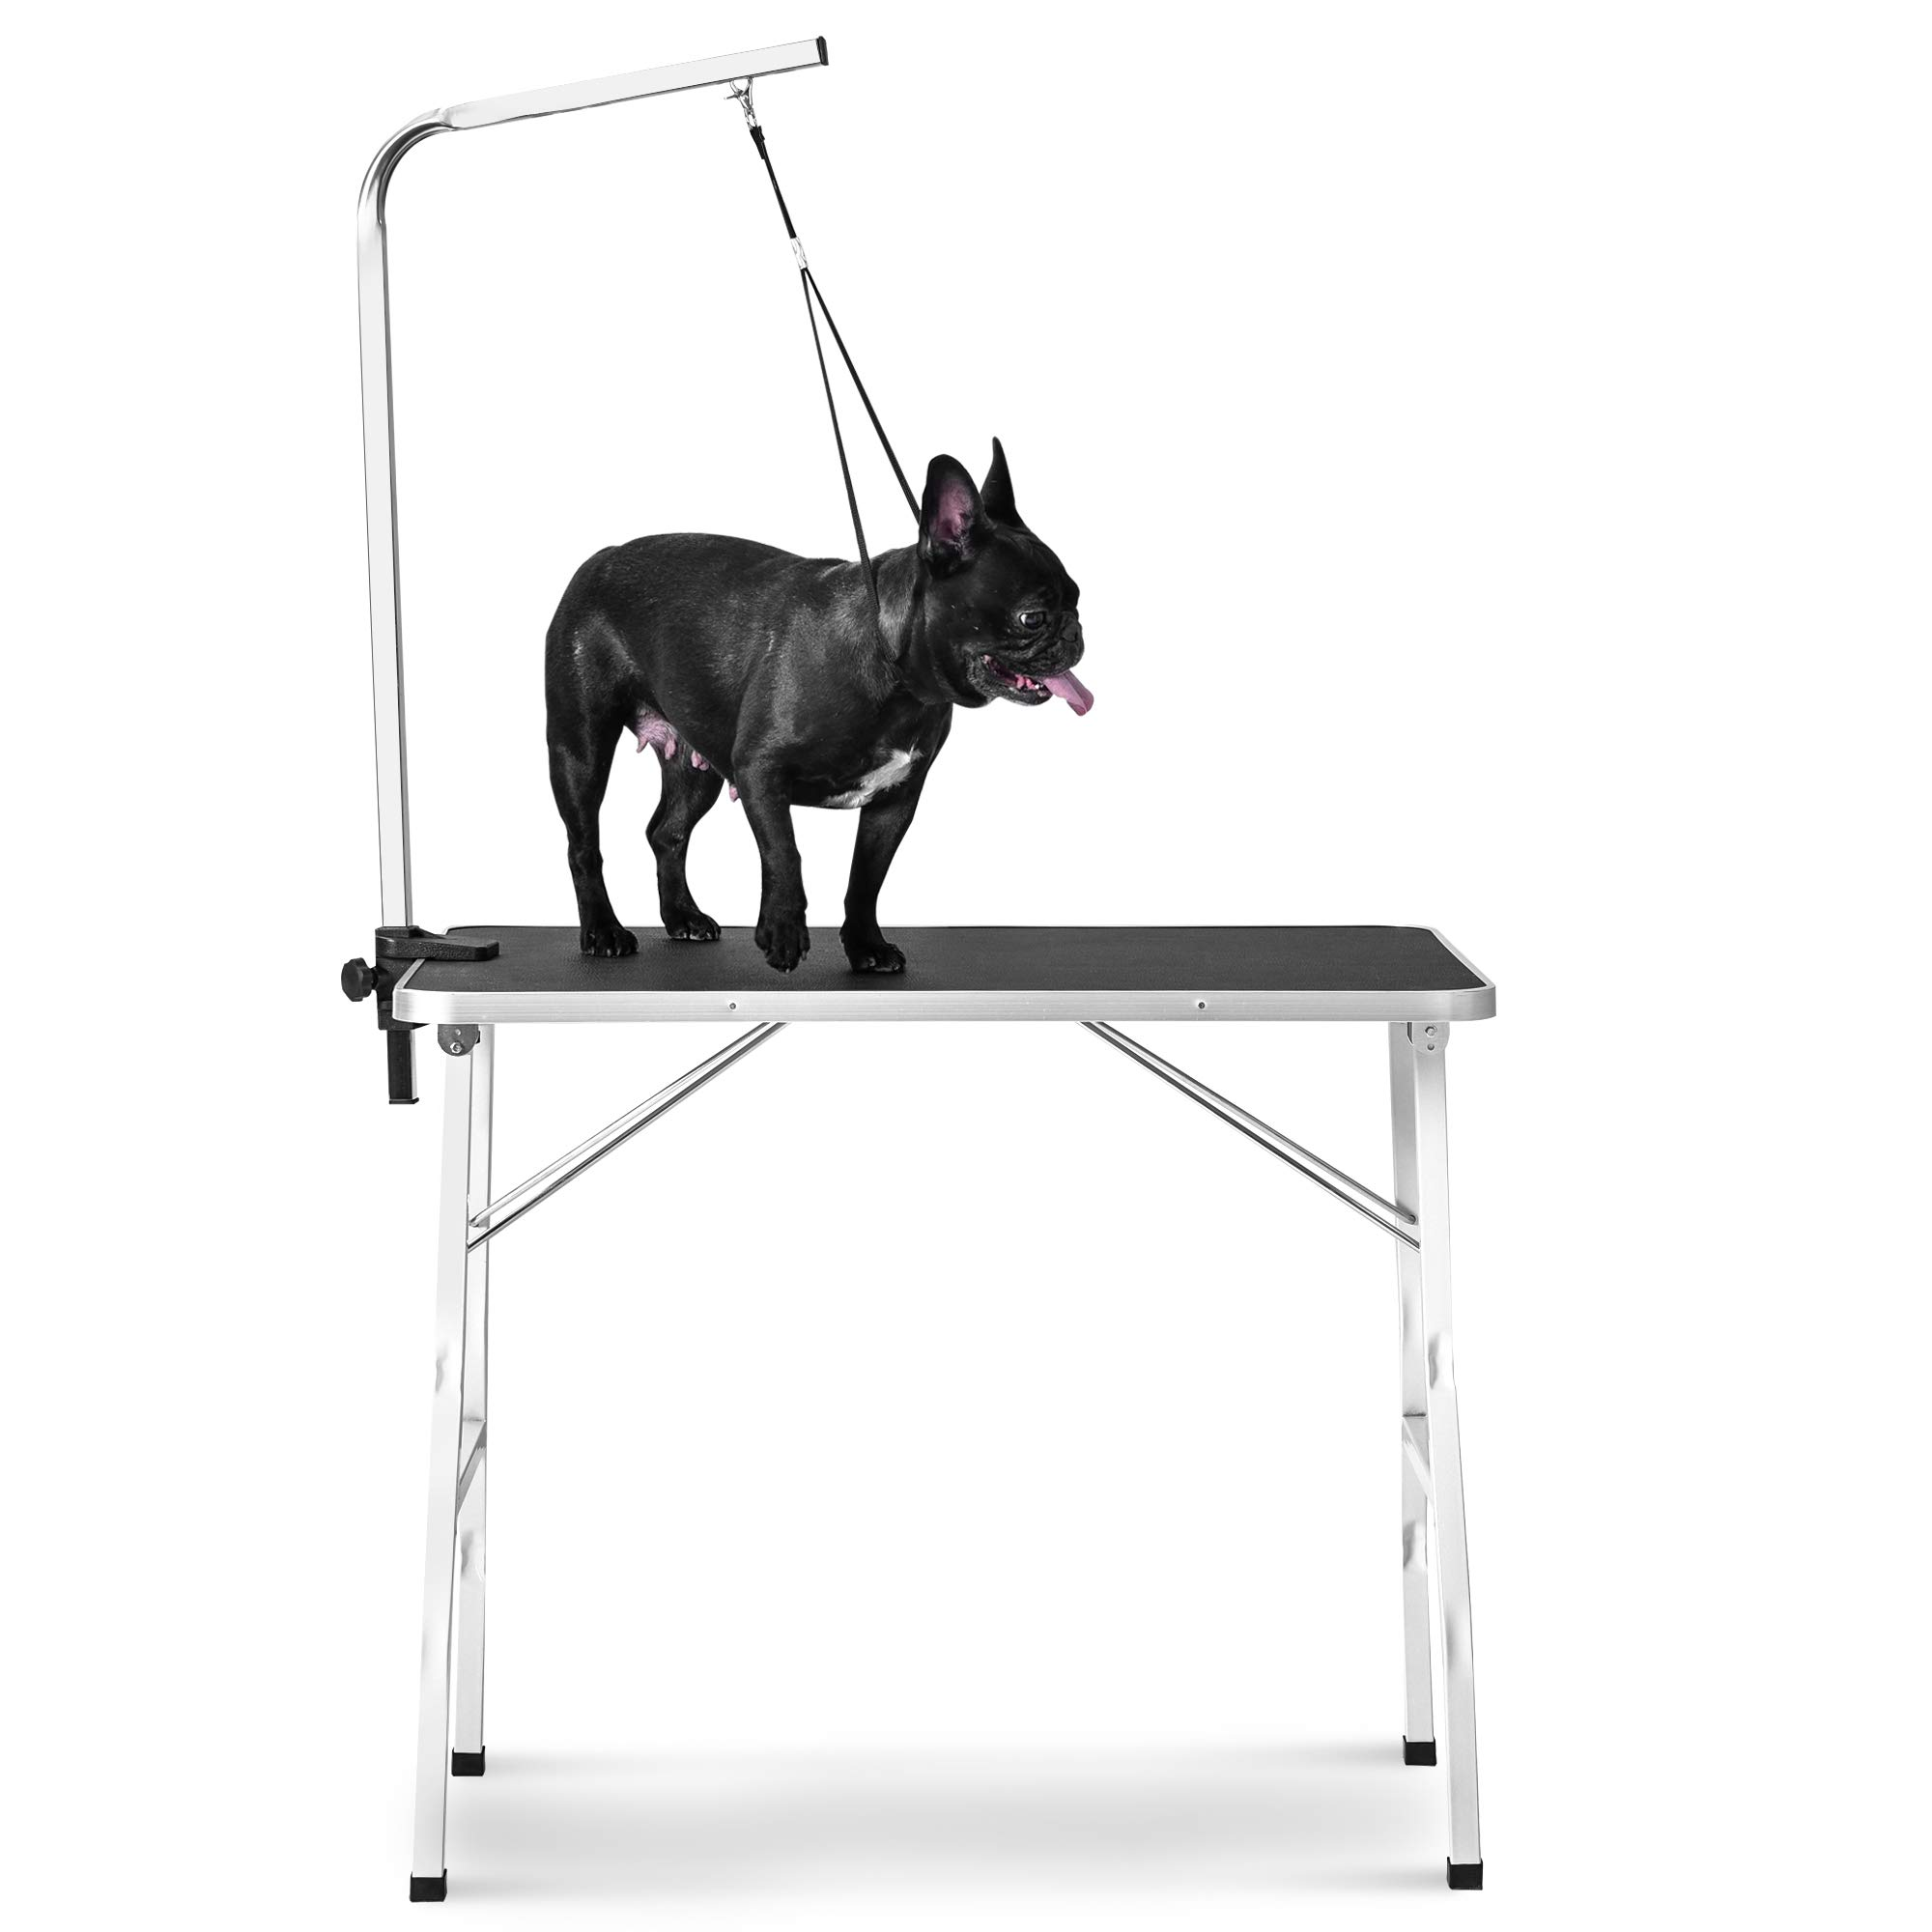 Rhomtree 30'' Foldable Pet Grooming Table with Adjustable Grooming Arm for Small Dog Durable Heavy Duty (30 inch)